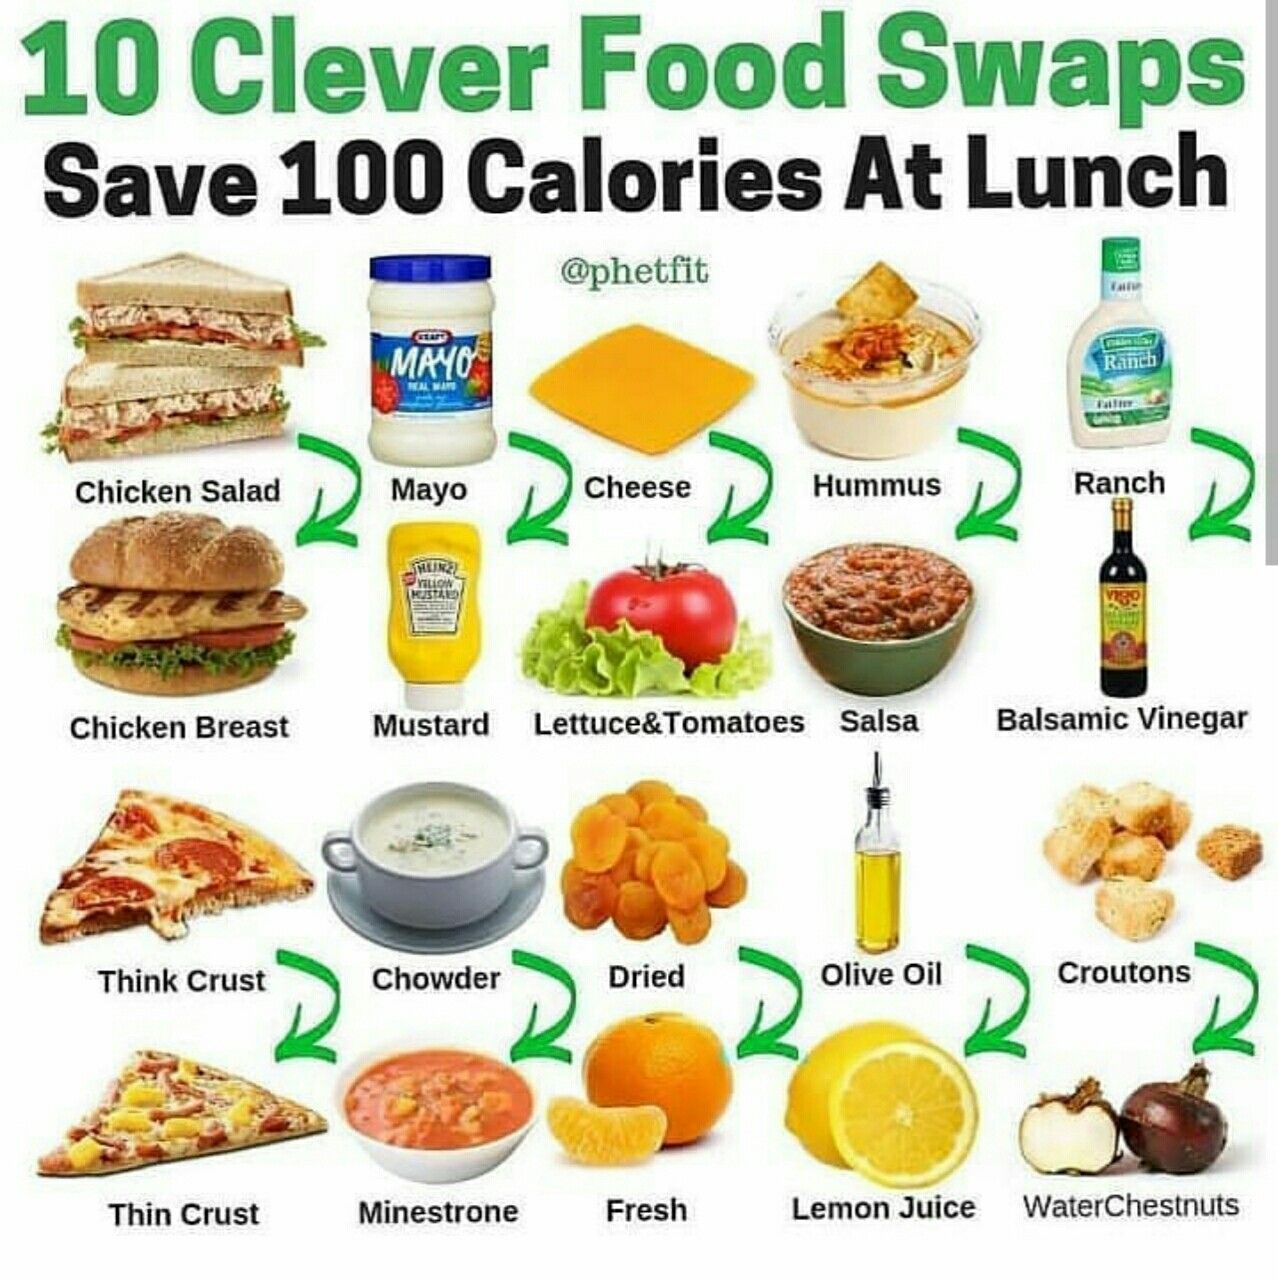 Here Are 10 Clever Food Swaps To Save 100 Calories At Lunch